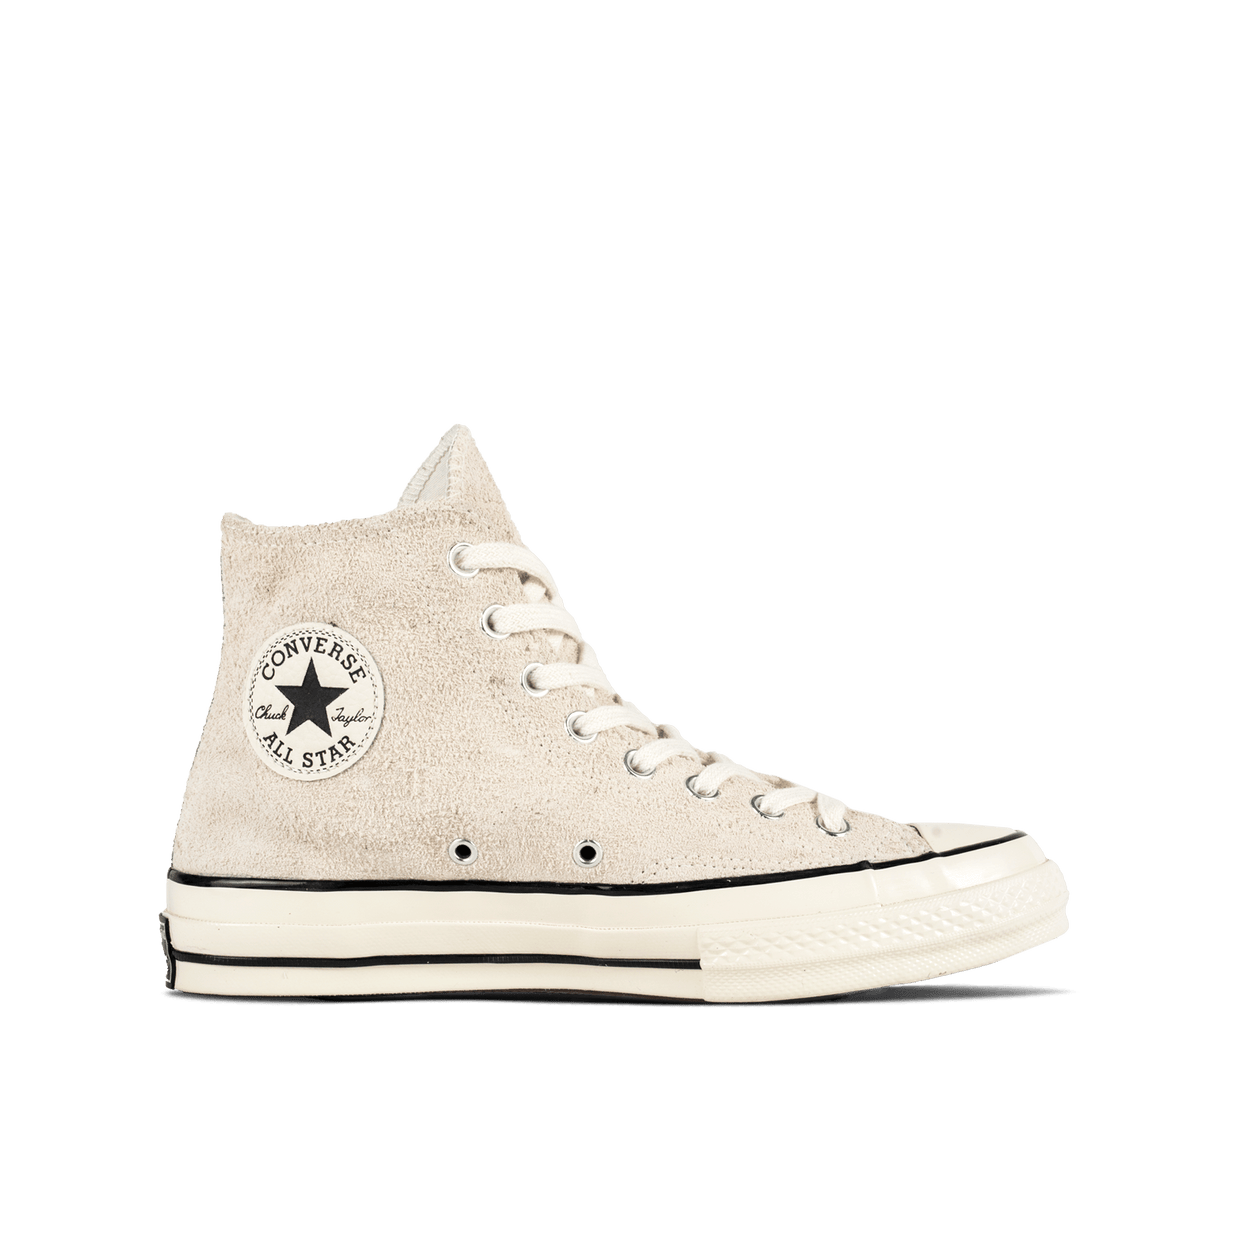 Chuck Taylor AS Hi 70s Suede - White